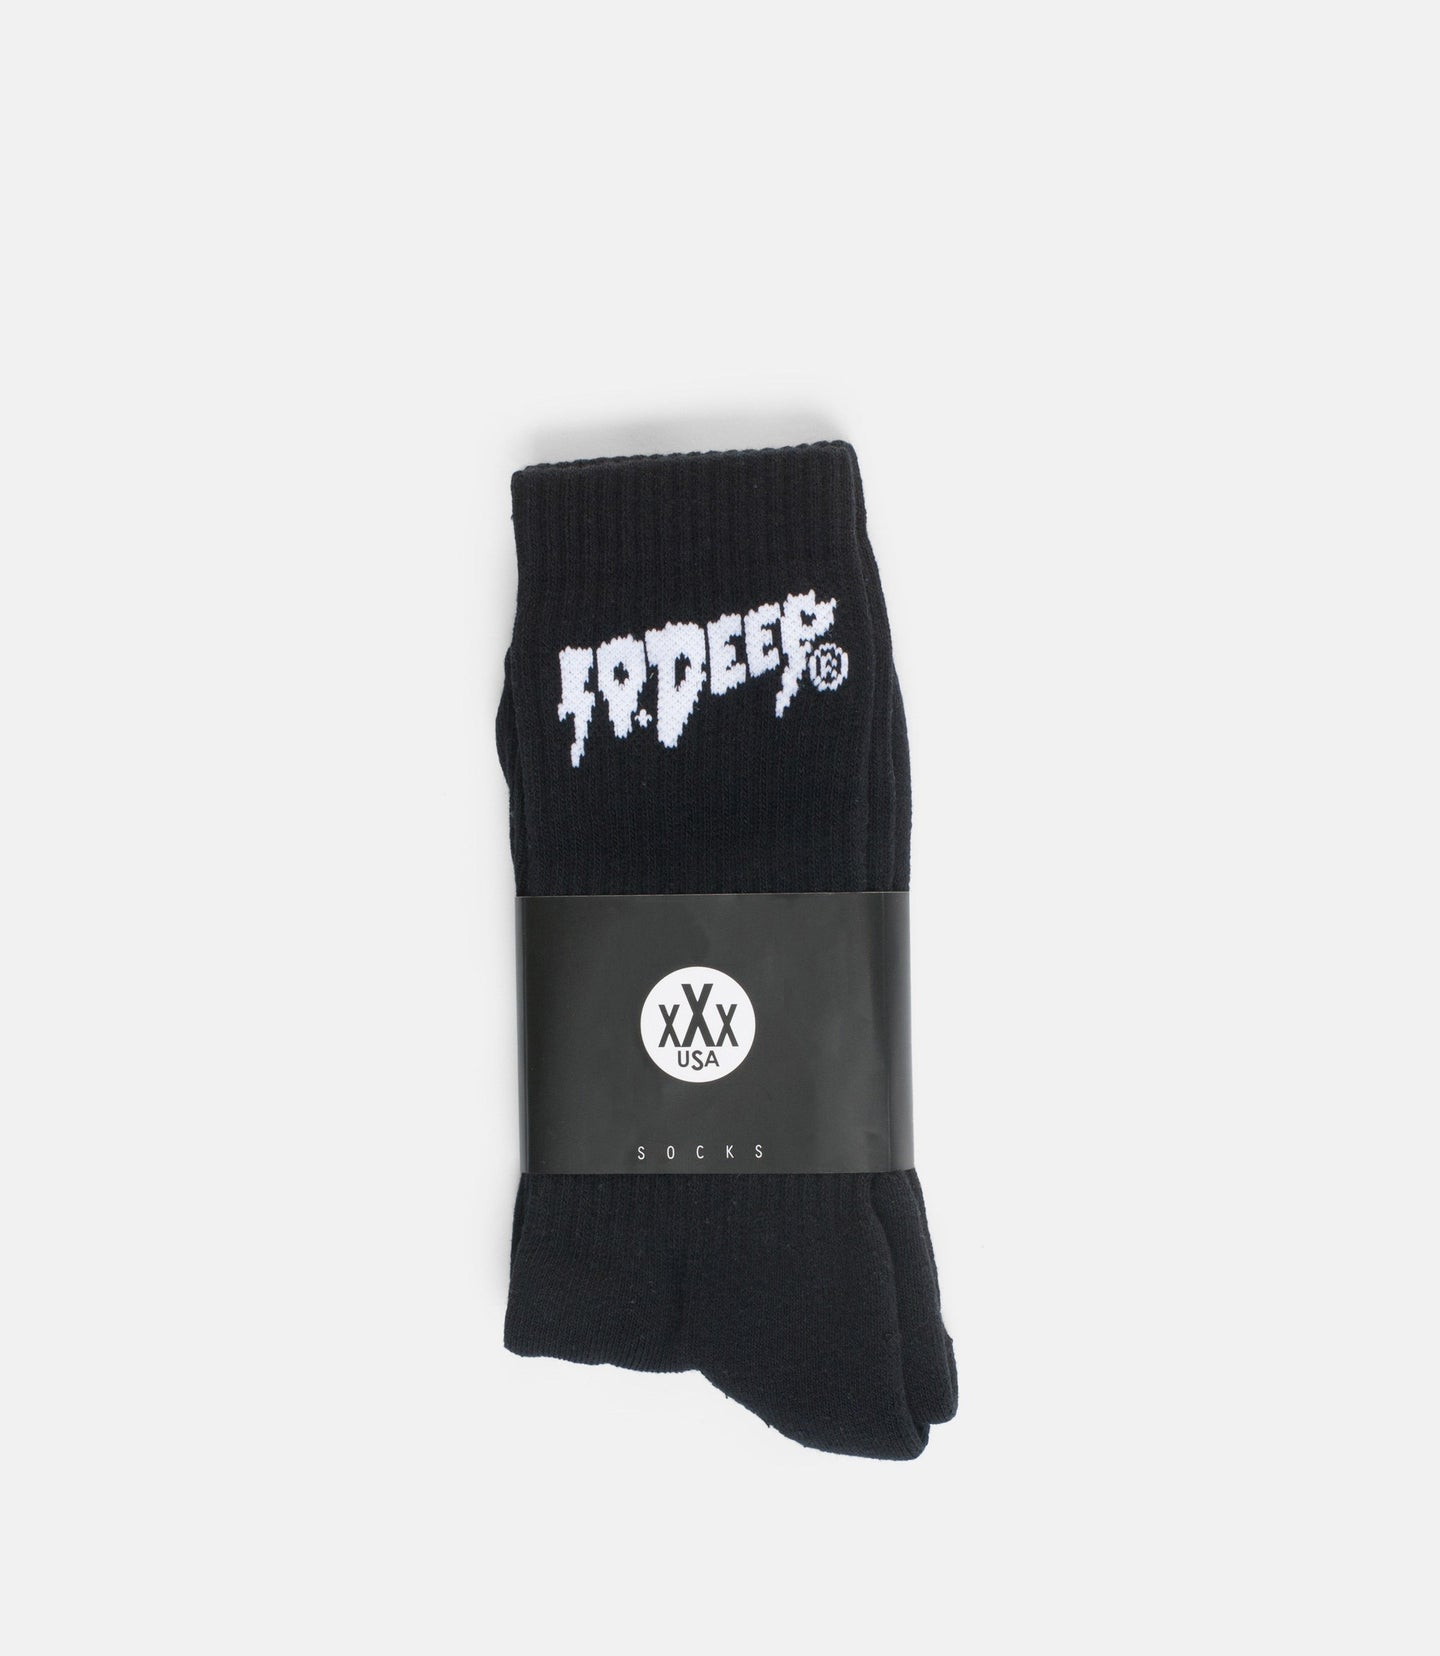 SOUND & FURY SOCKS - BLACK